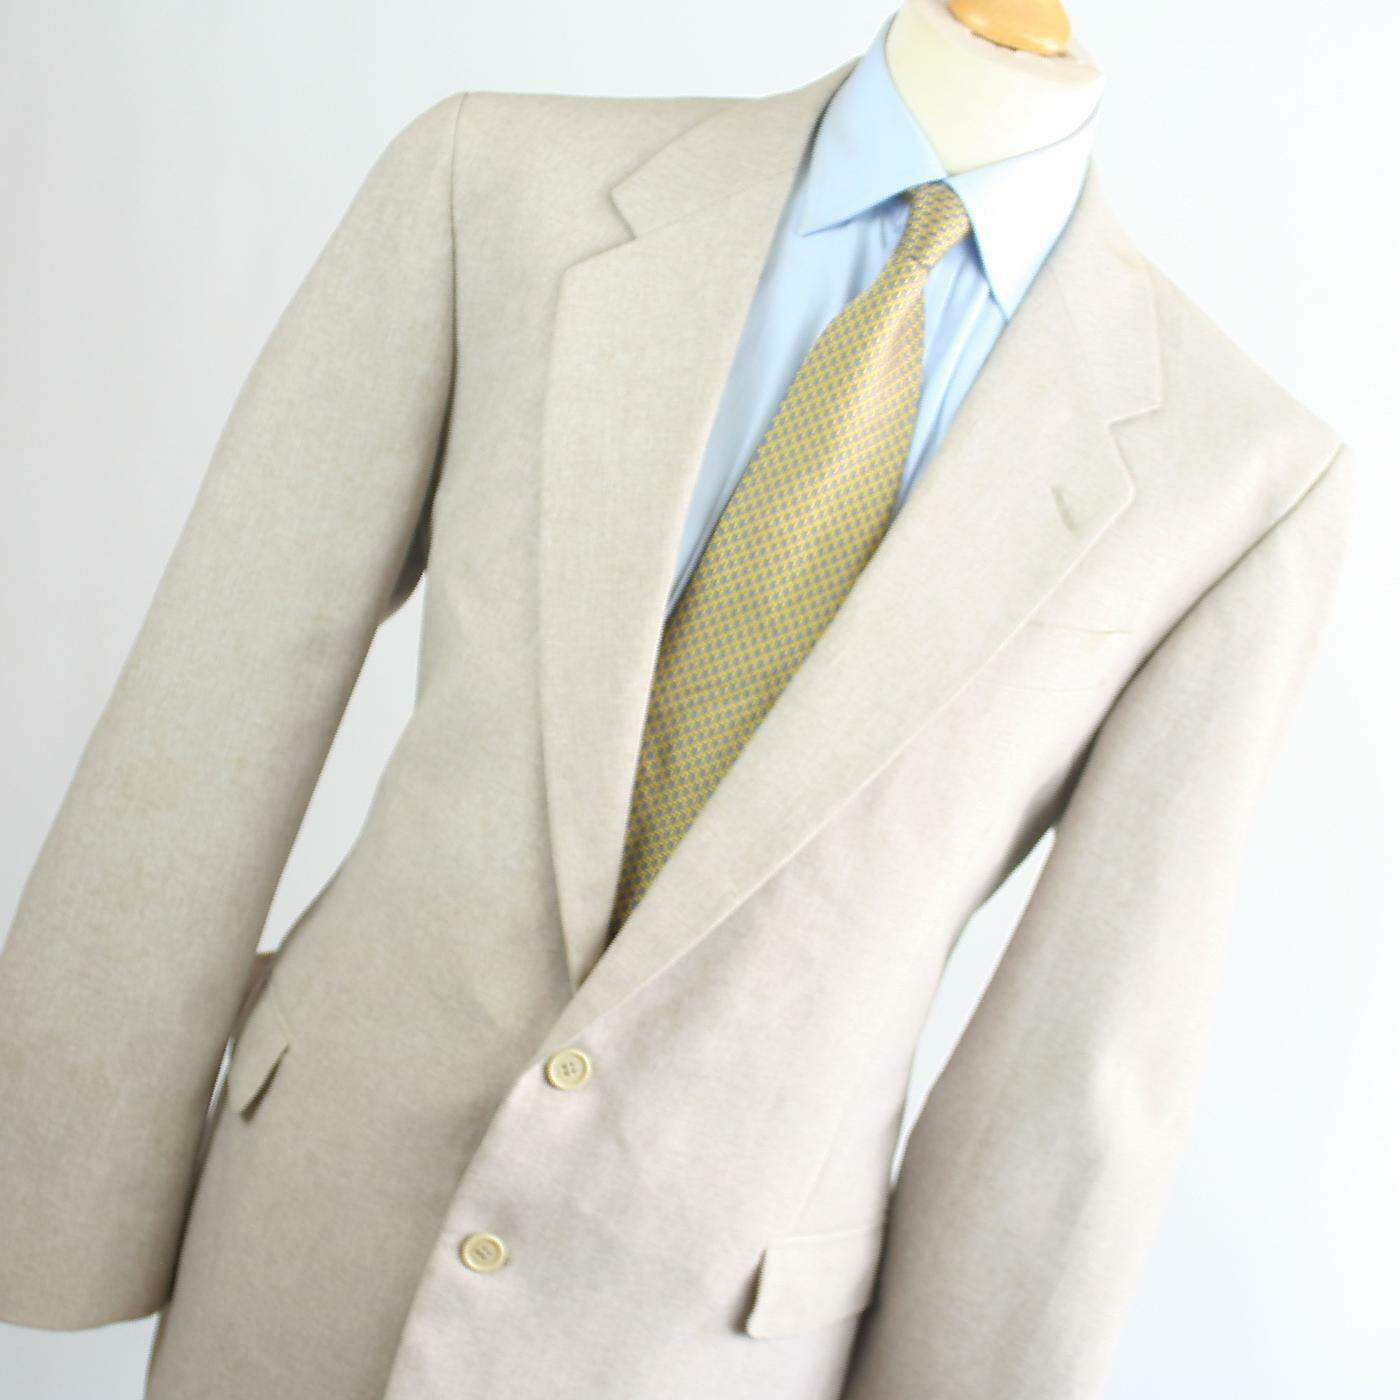 C&A  Herren Beige Wool Blend Single Breasted Suit 44/40 (Long)